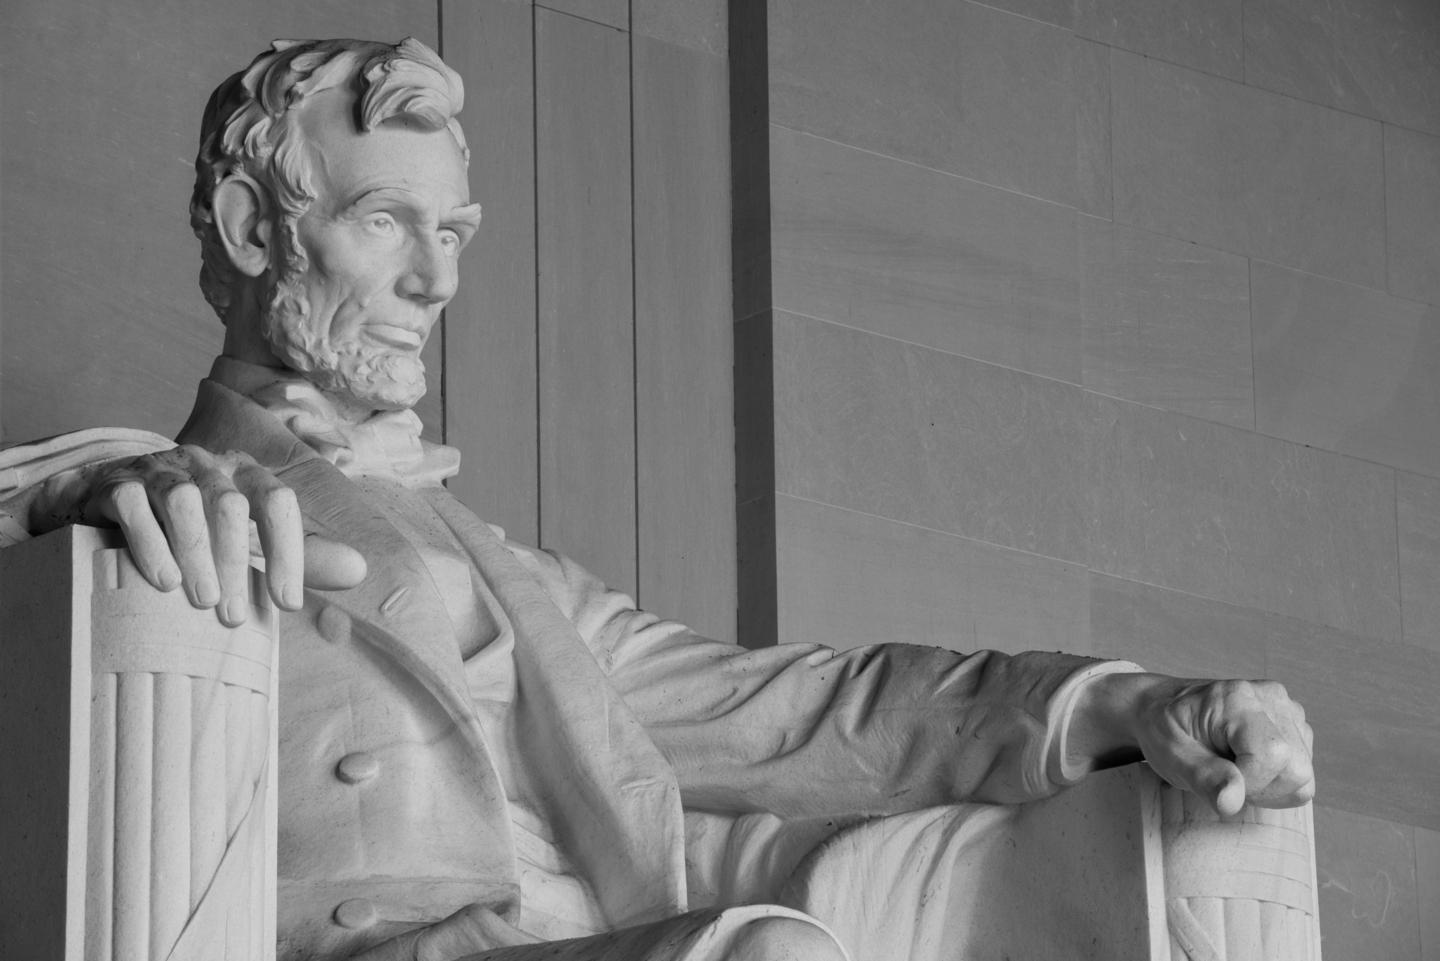 Abraham Lincoln statue at Lincoln Memorial Washington DC